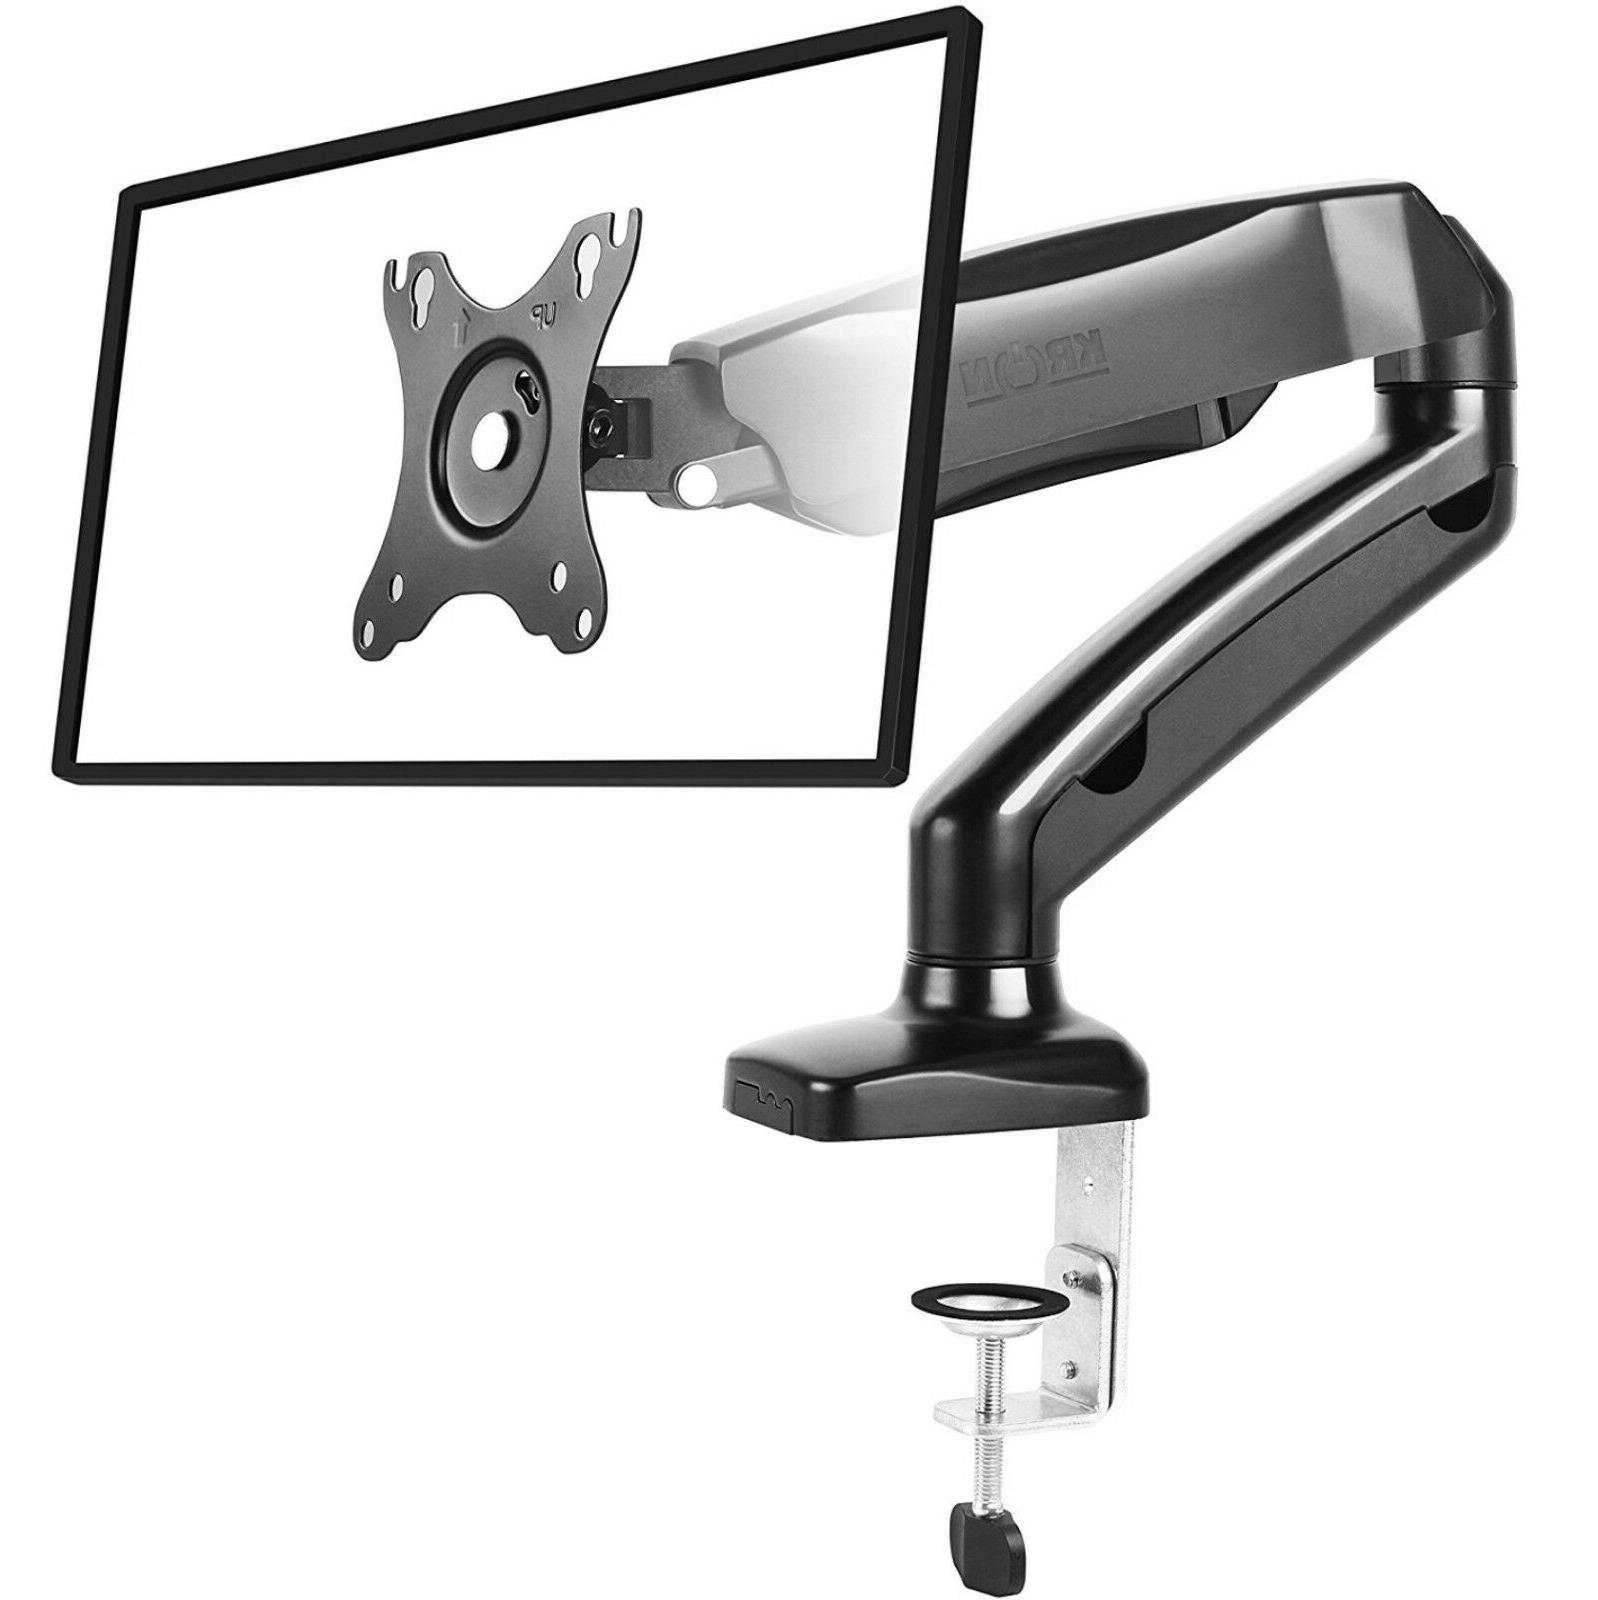 ONKRON Desk Mount Articulating Arm for LED LCD Flat Panel TV